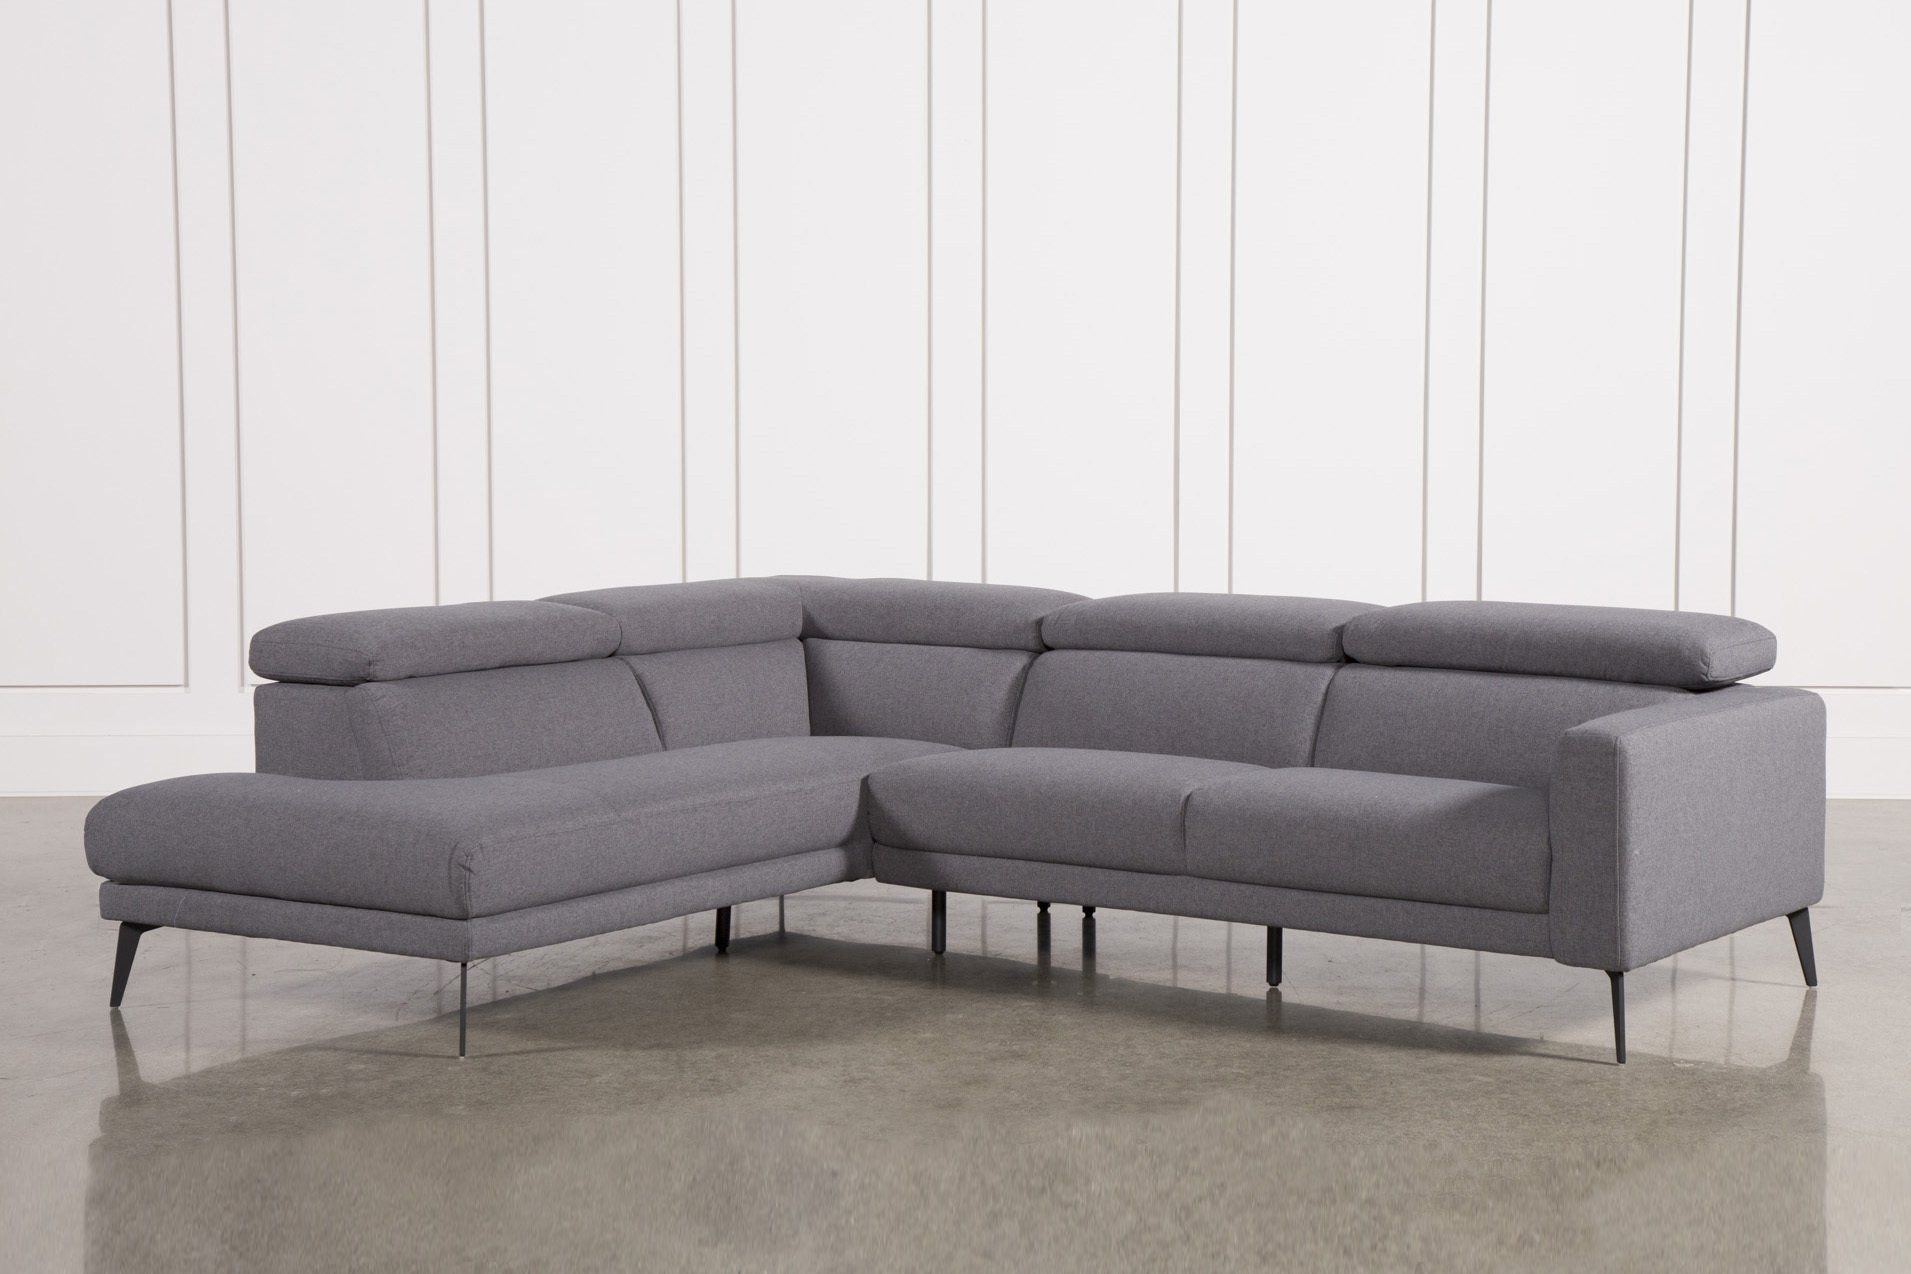 Ikea - Norsborg, Sofa, Edum Beige, , Large Or Small, Color for Cosmos Grey 2 Piece Sectionals With Laf Chaise (Image 14 of 30)